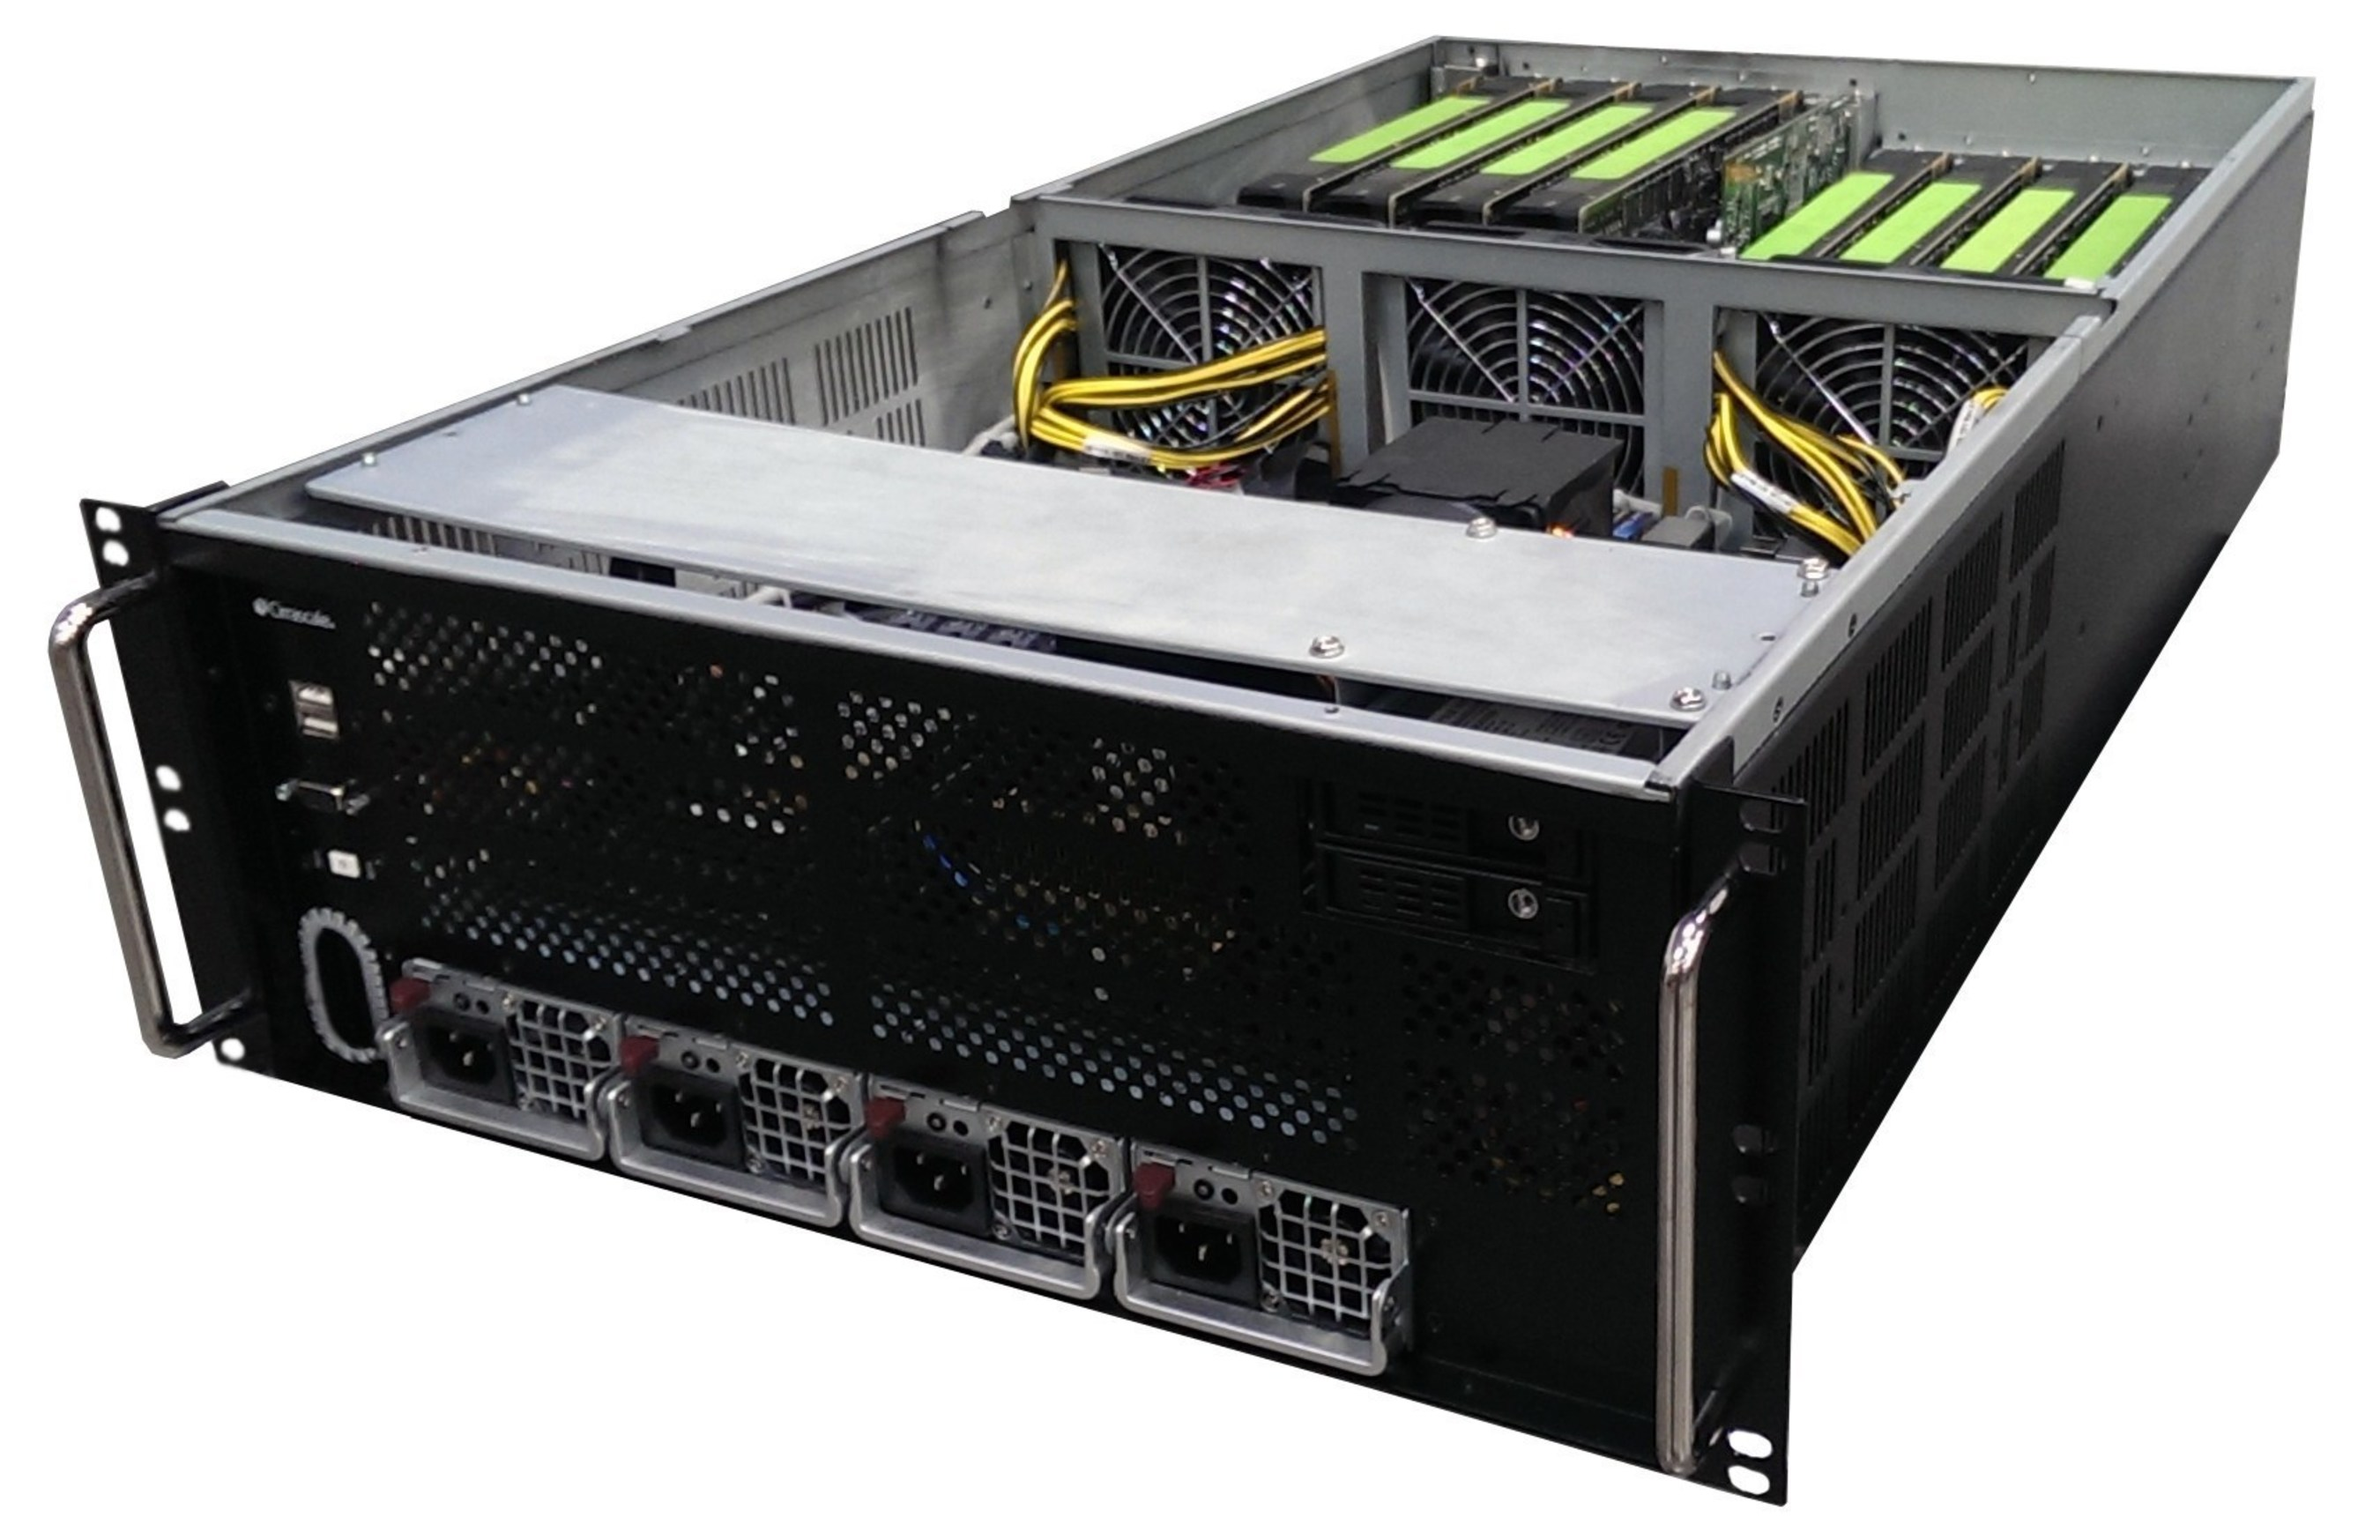 Cirrascale Confirms Facebook 'Big Sur' AI Hardware for Open Compute Appears to Mirror Its Rackmount